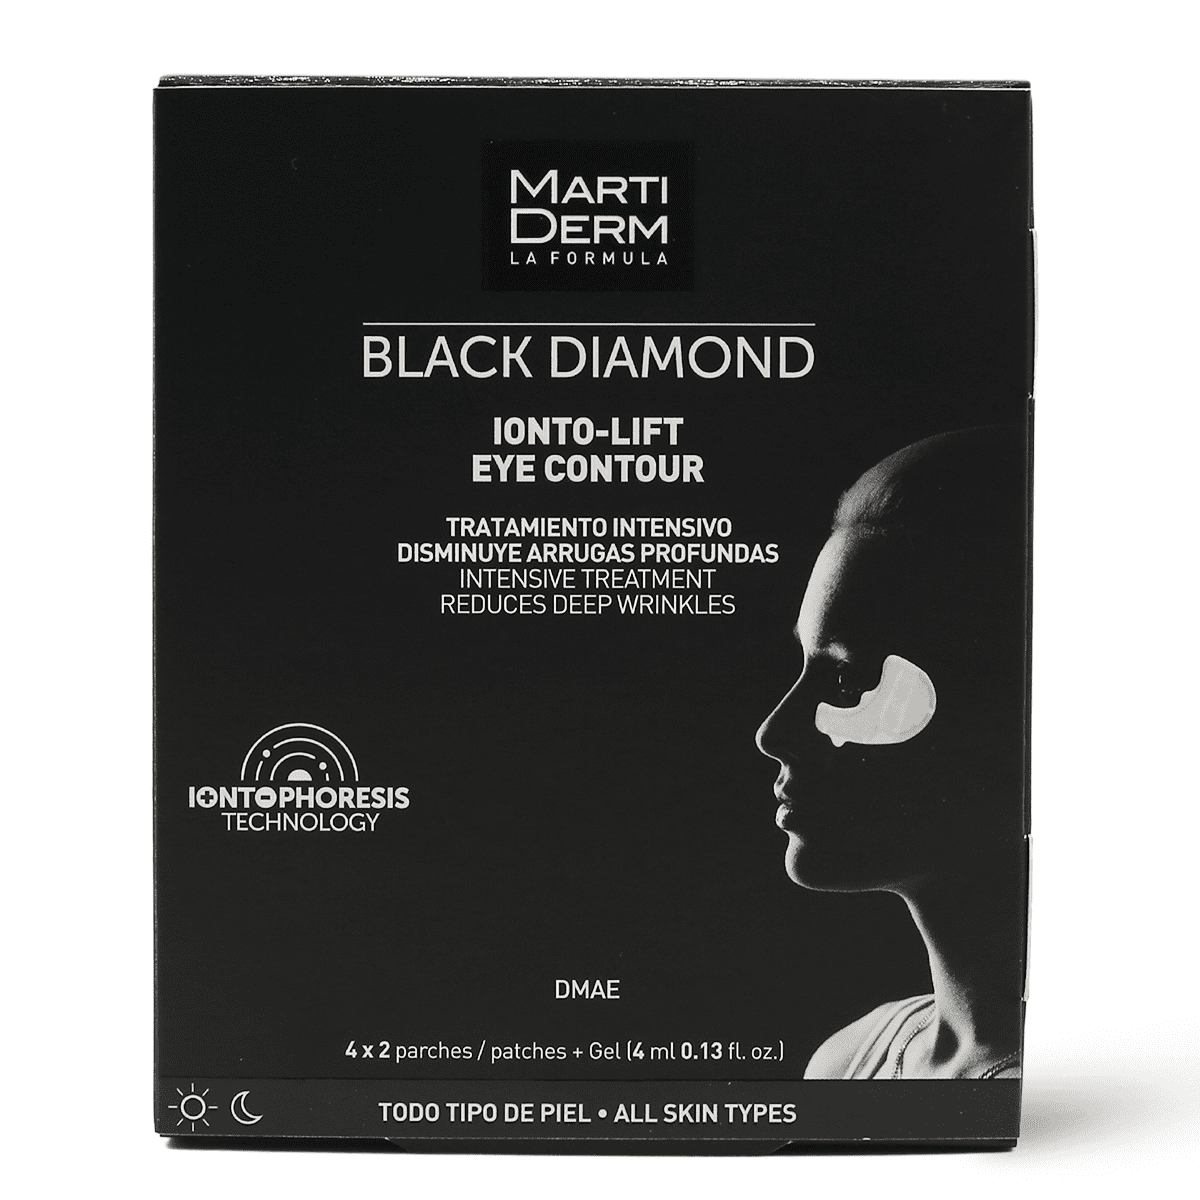 MARTIDERM BLACK DIAM. EYE CONTOUR 4 PCS